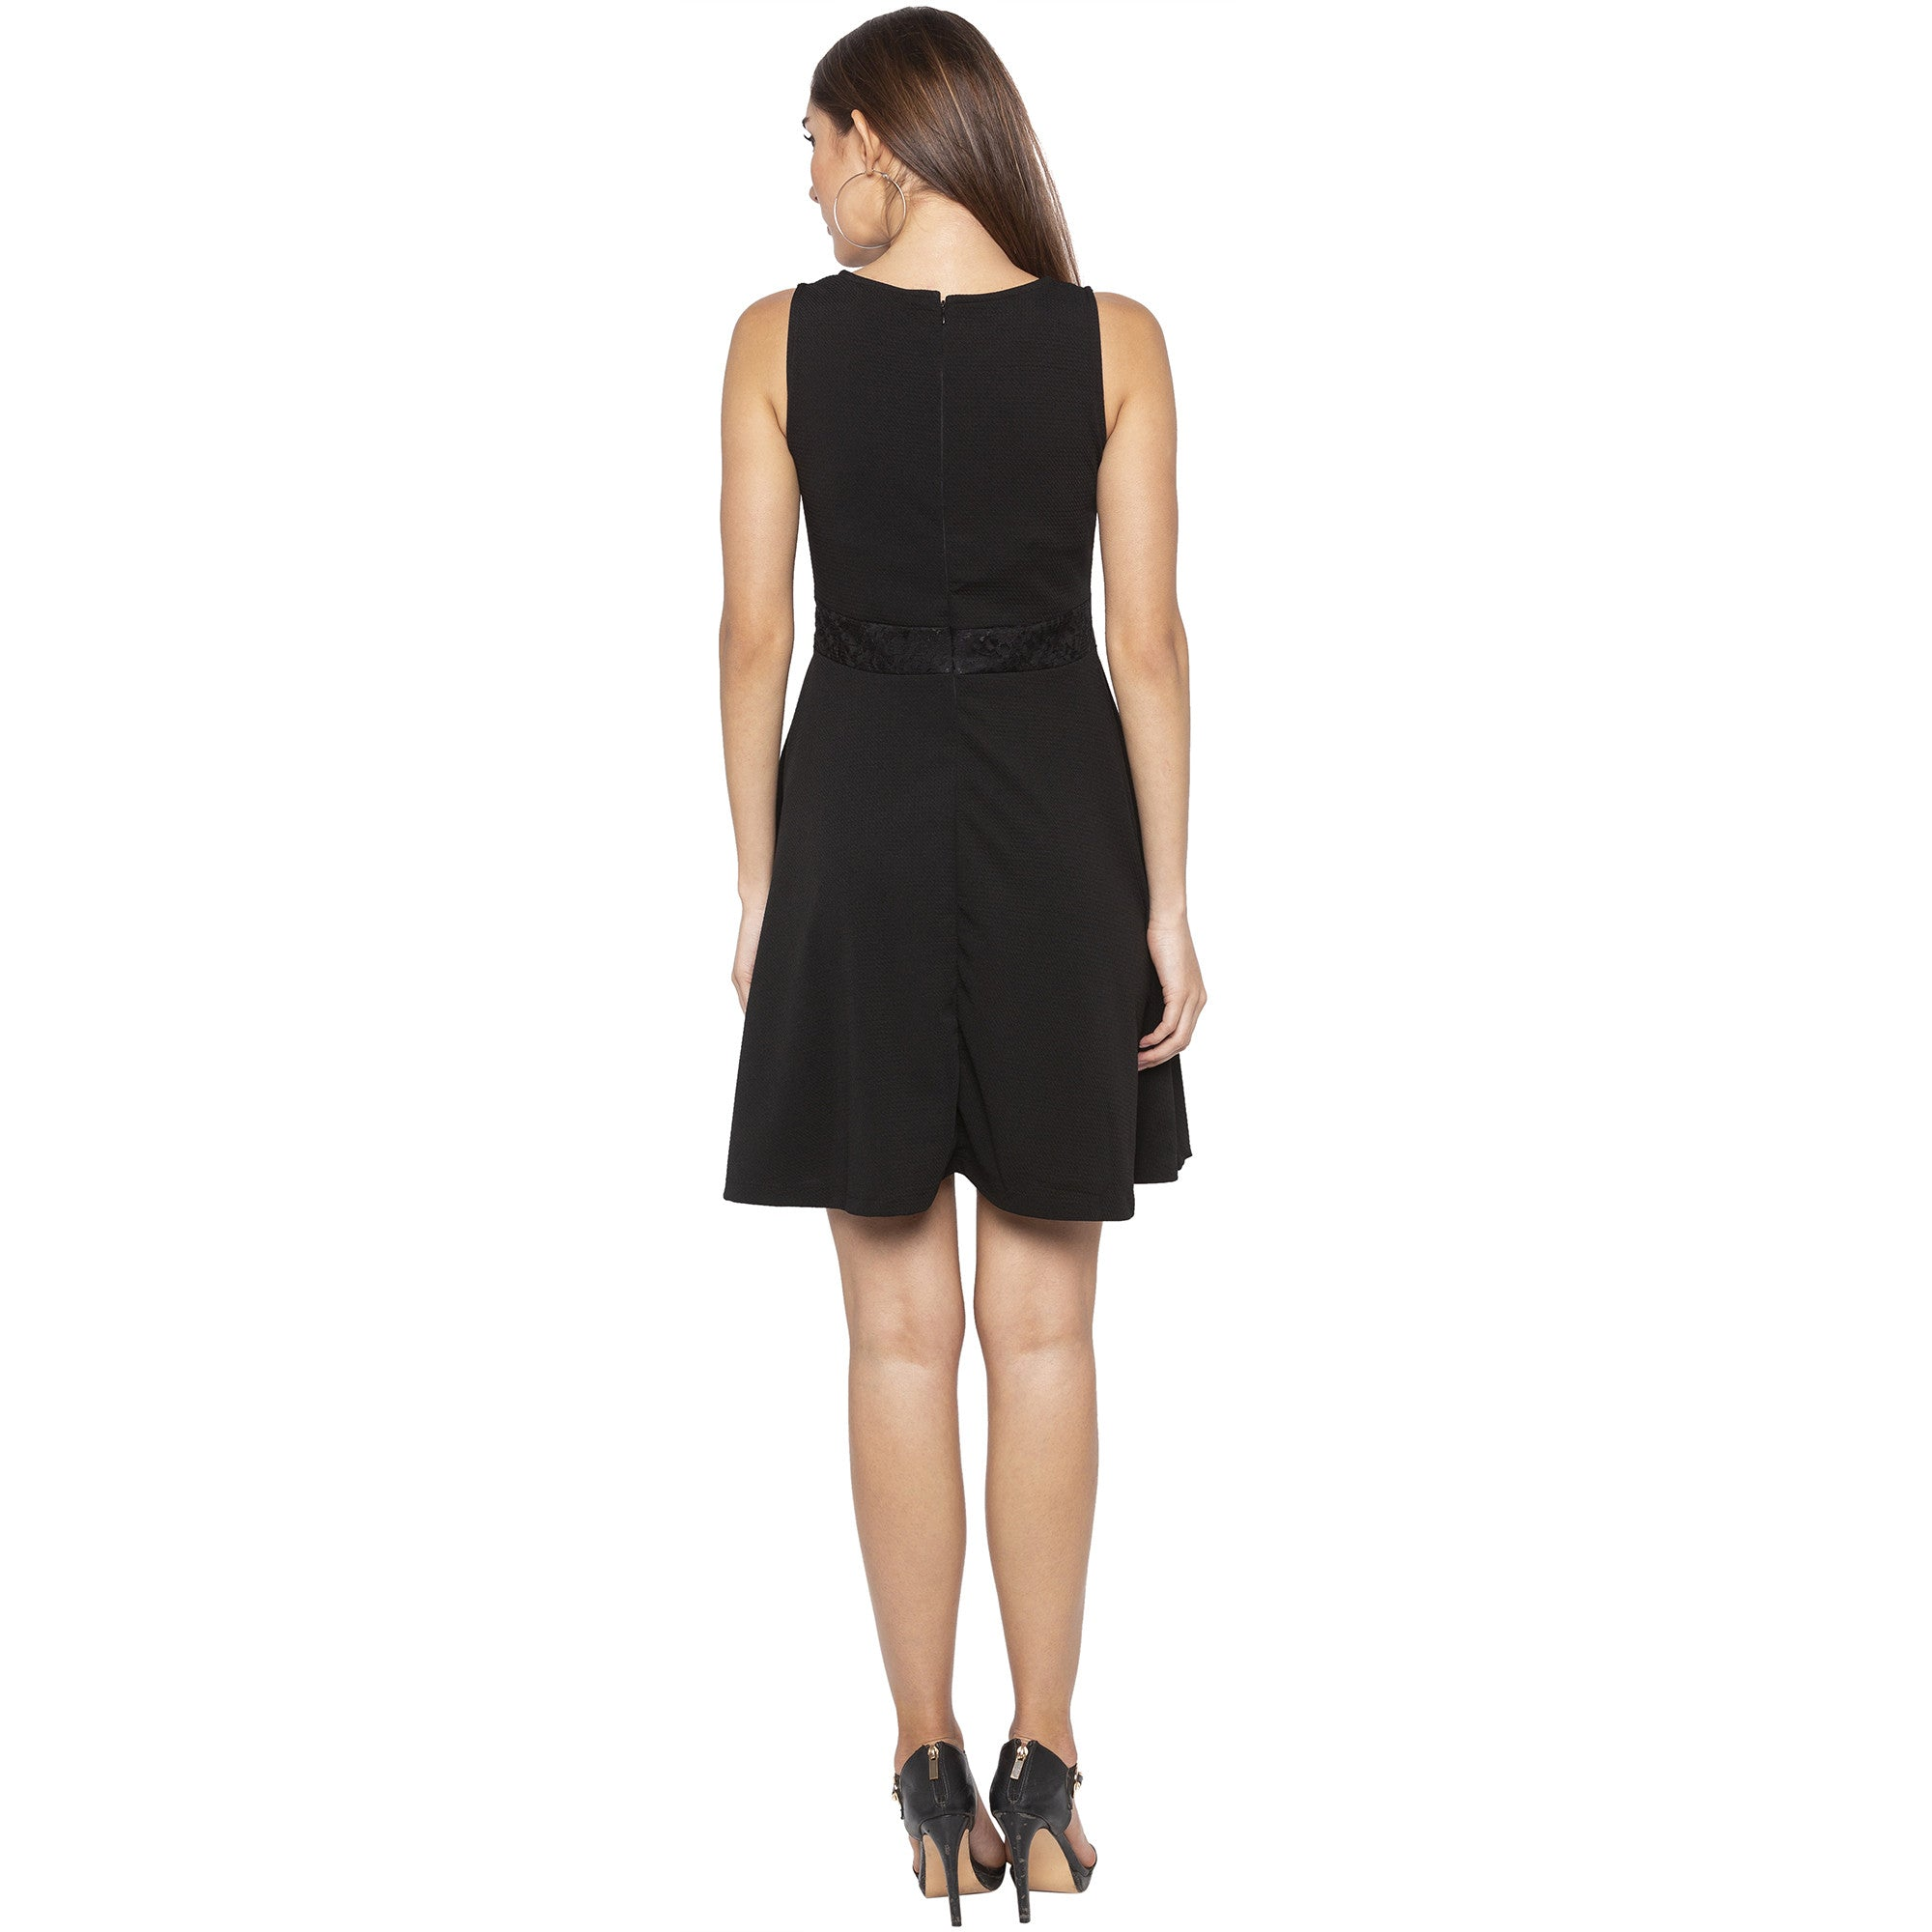 Casual Black Color Solid Fit and Flare Dress-3